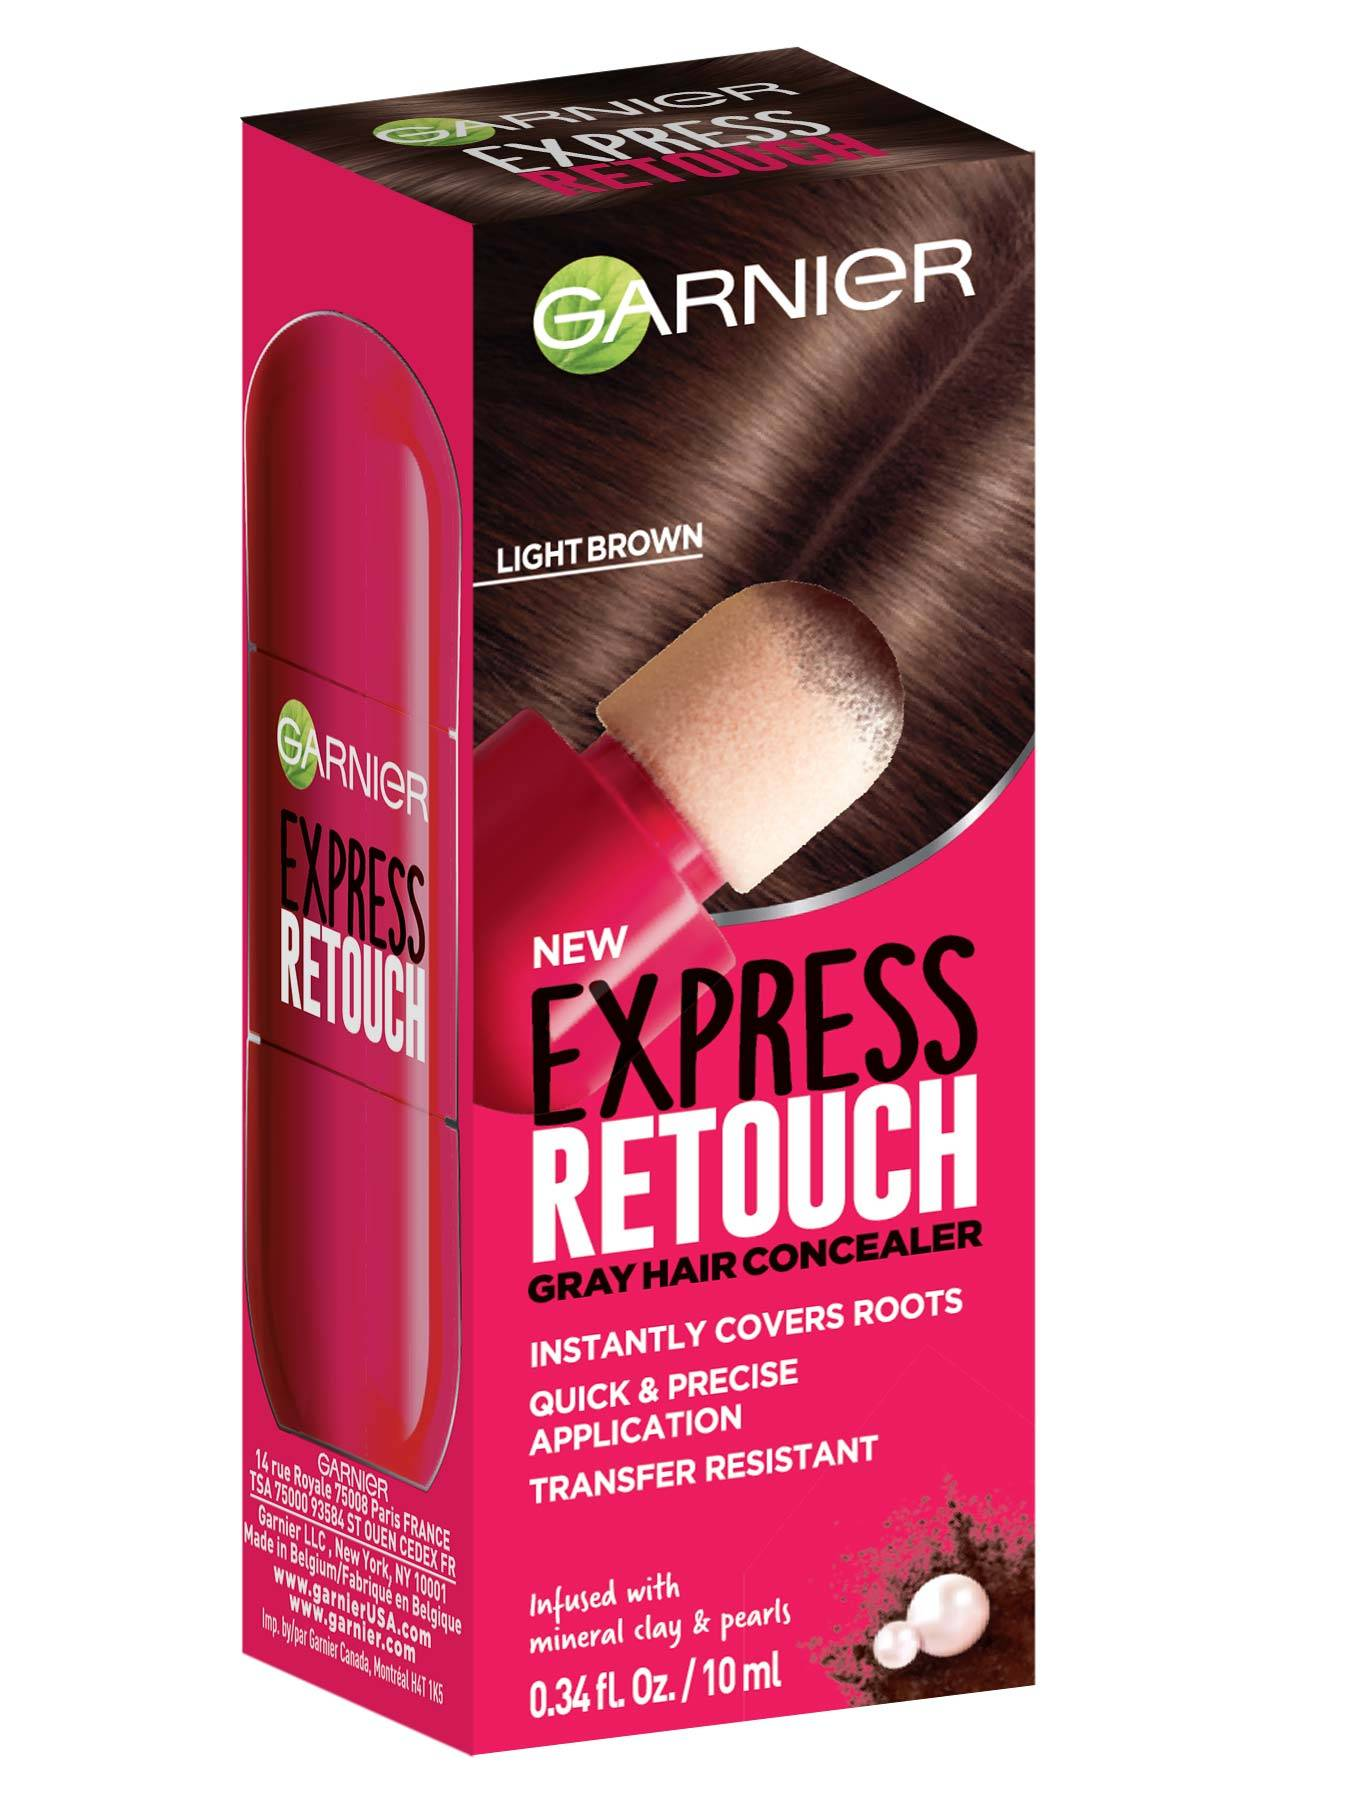 Express Retouch Light Brown Front packshot - Temporary Root Touchup